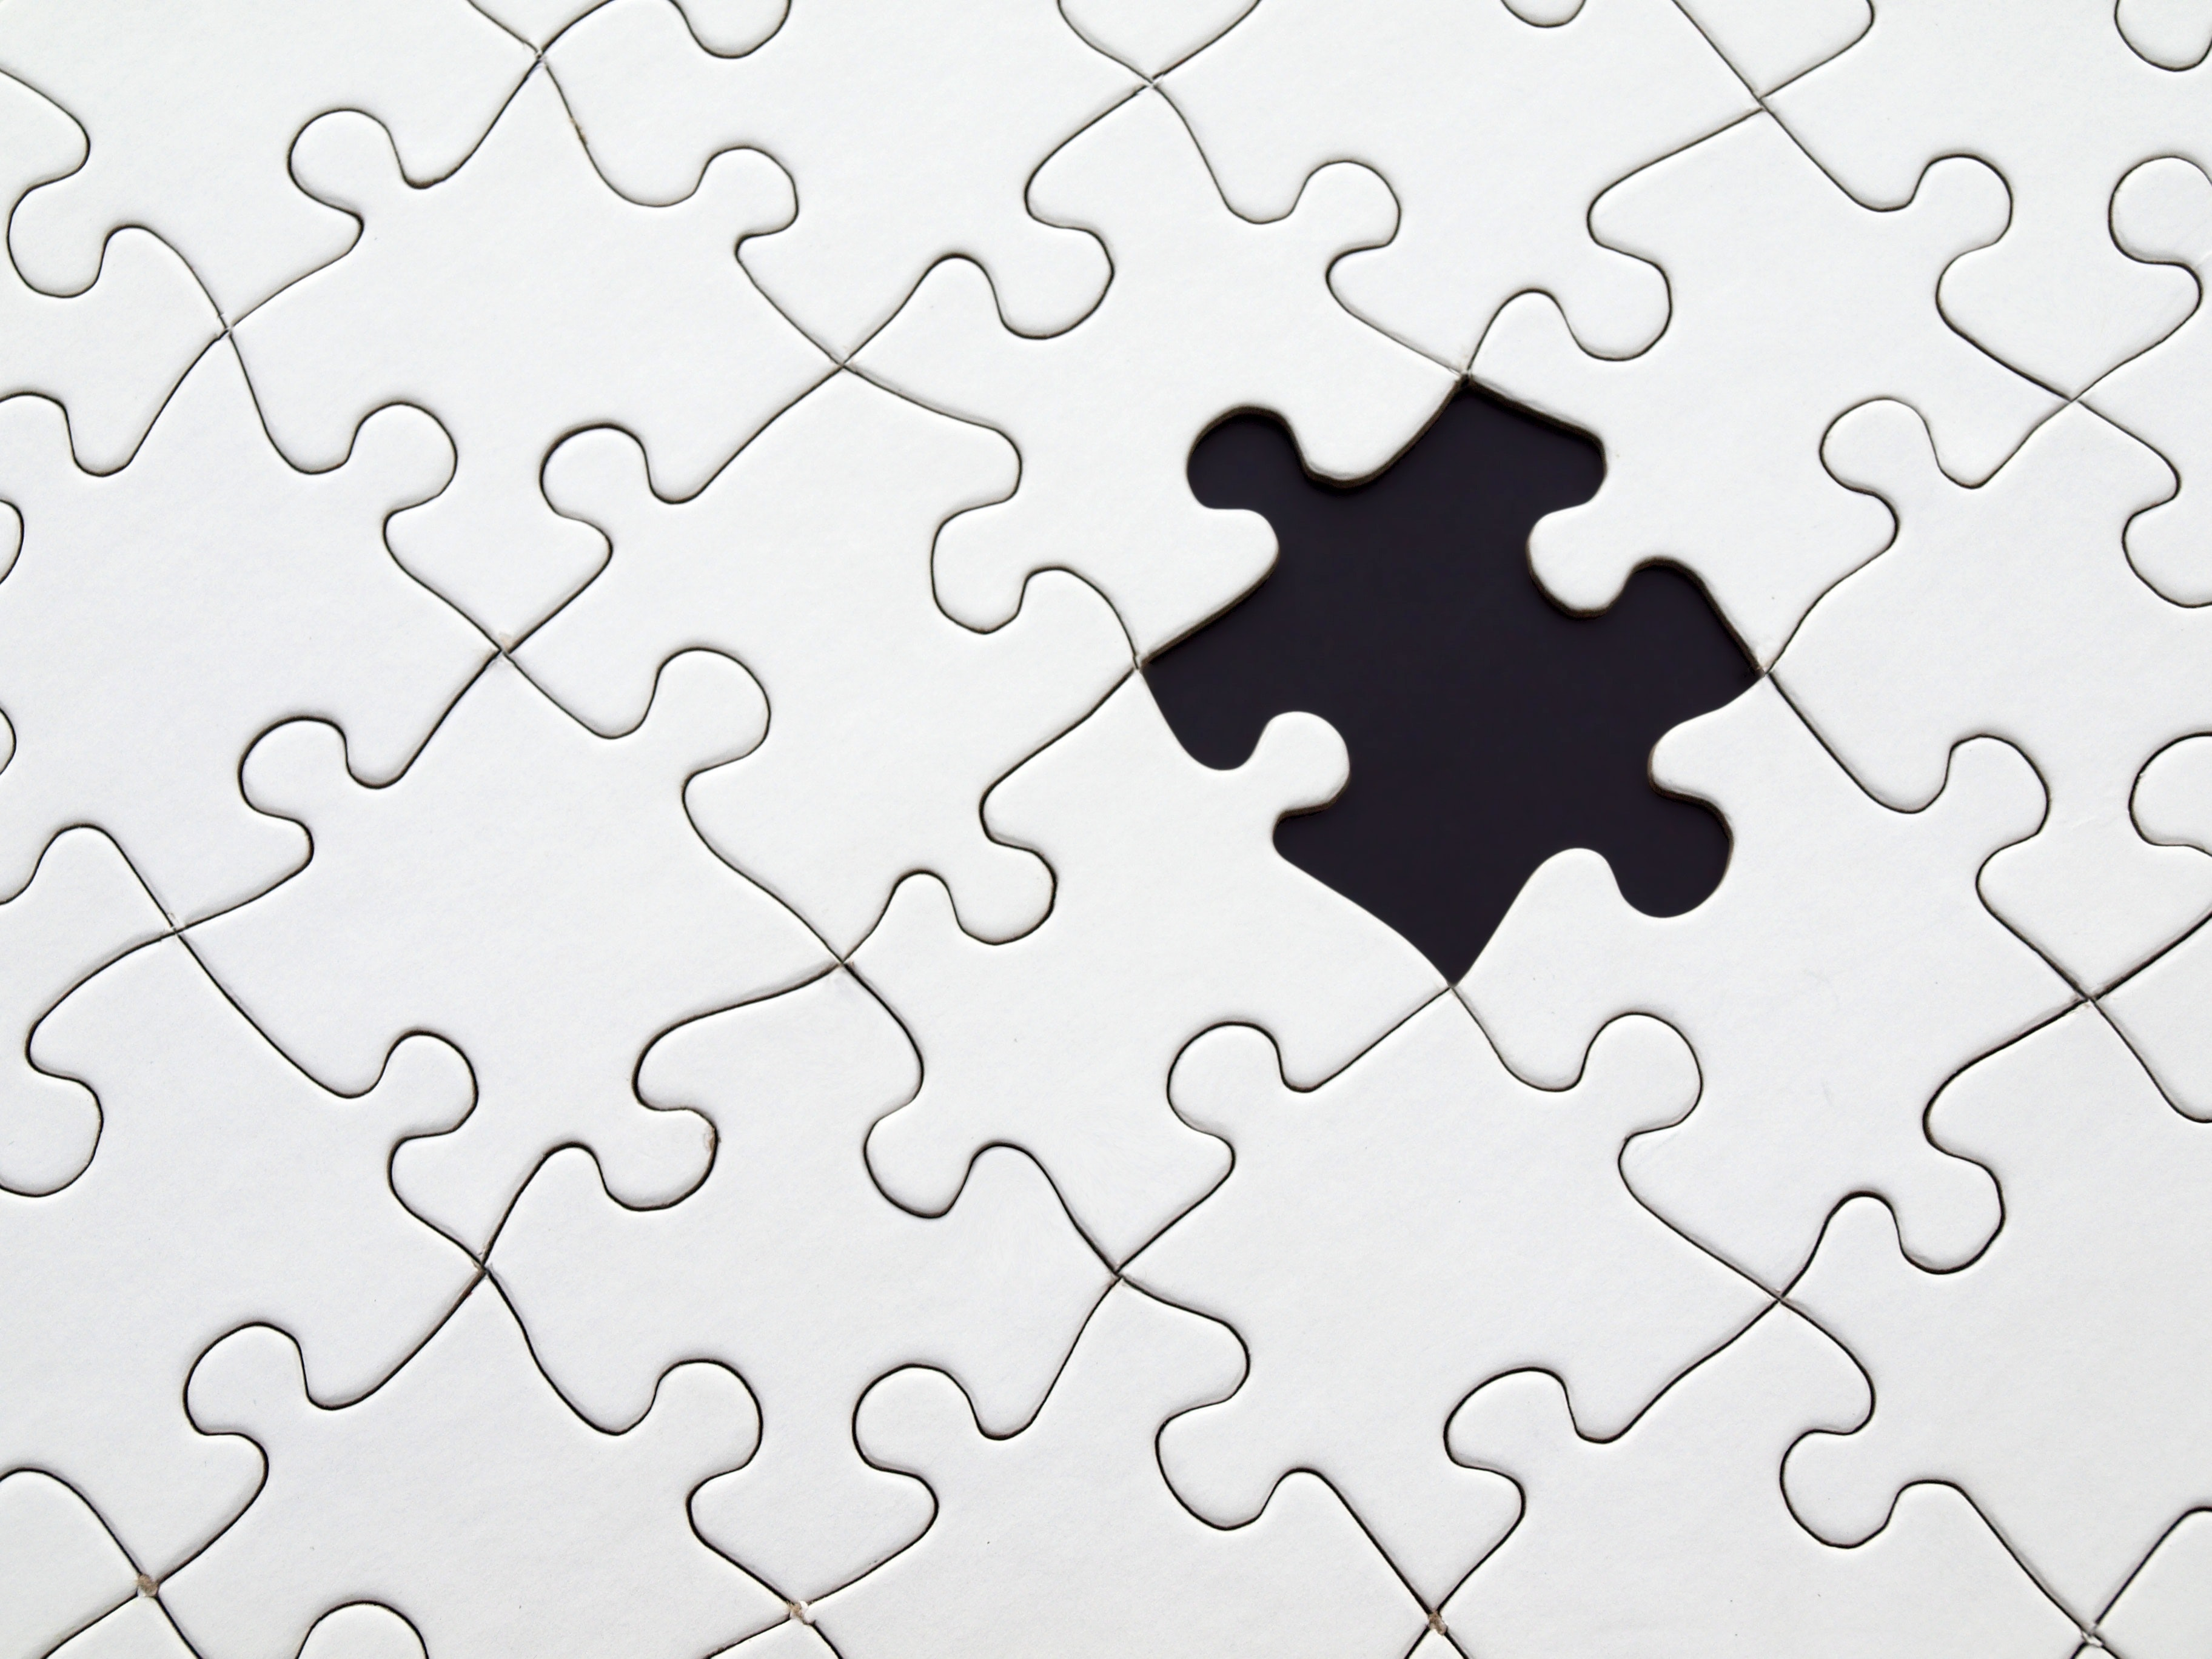 Image of puzzle with one piece missing